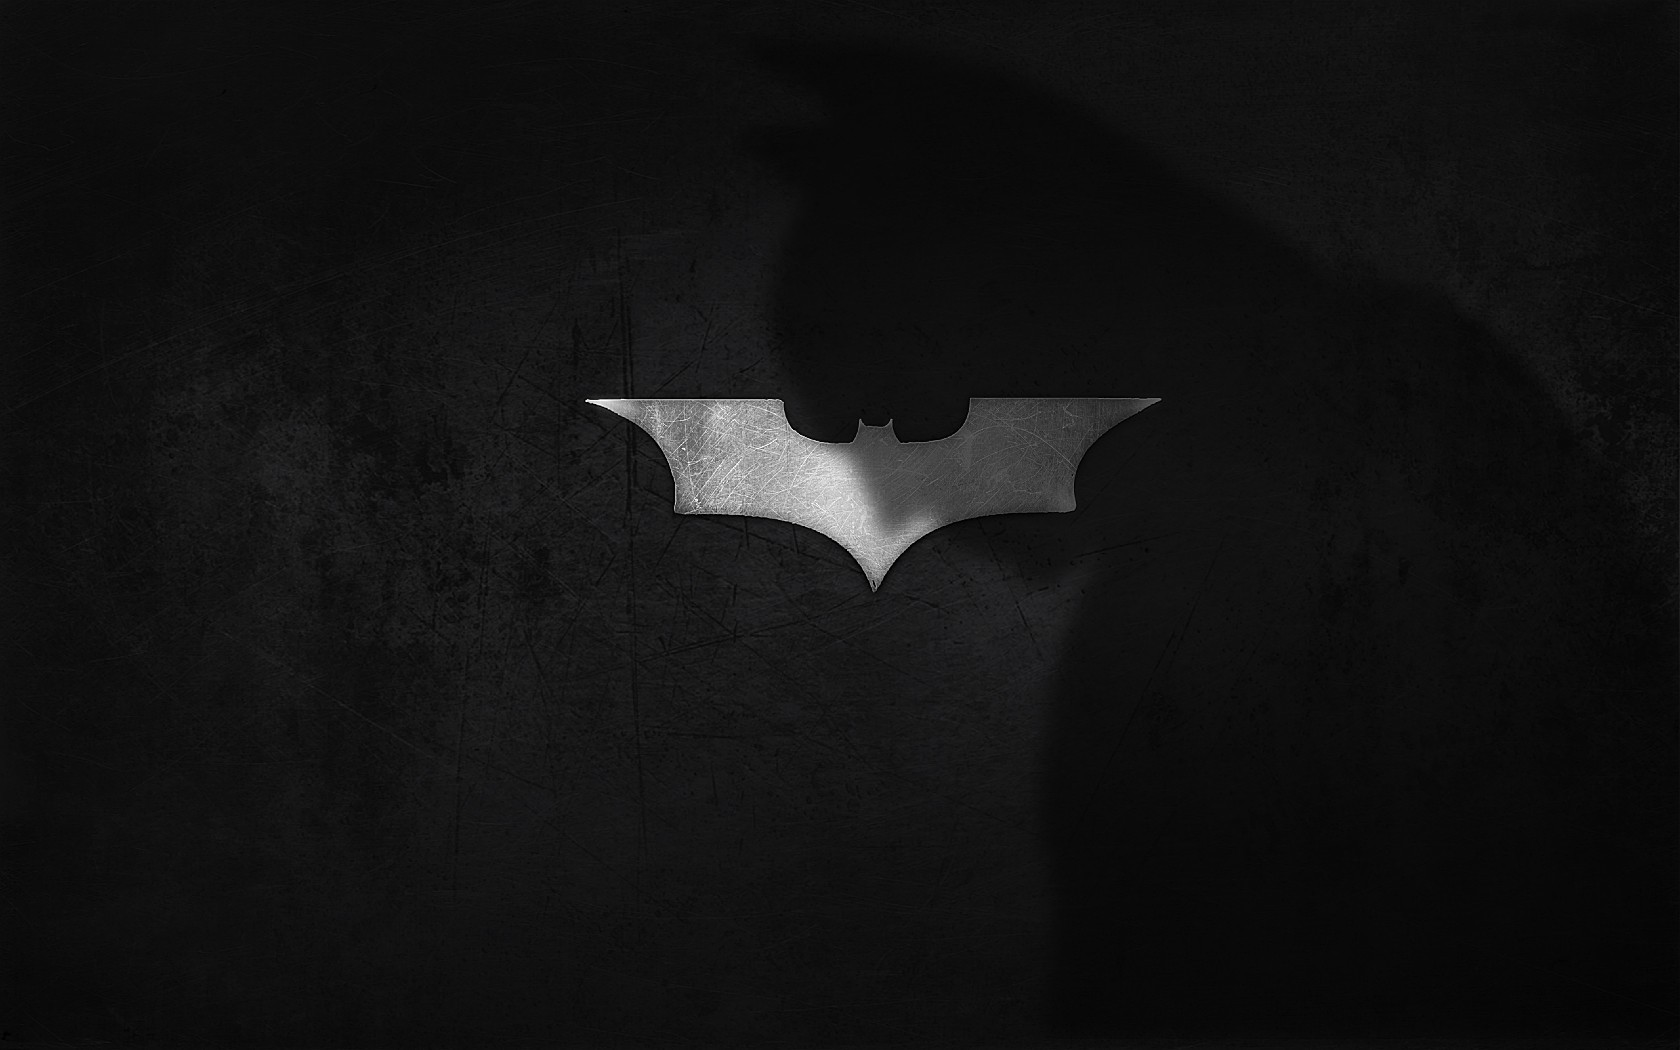 Batman dc comics shadows HD Wallpaper